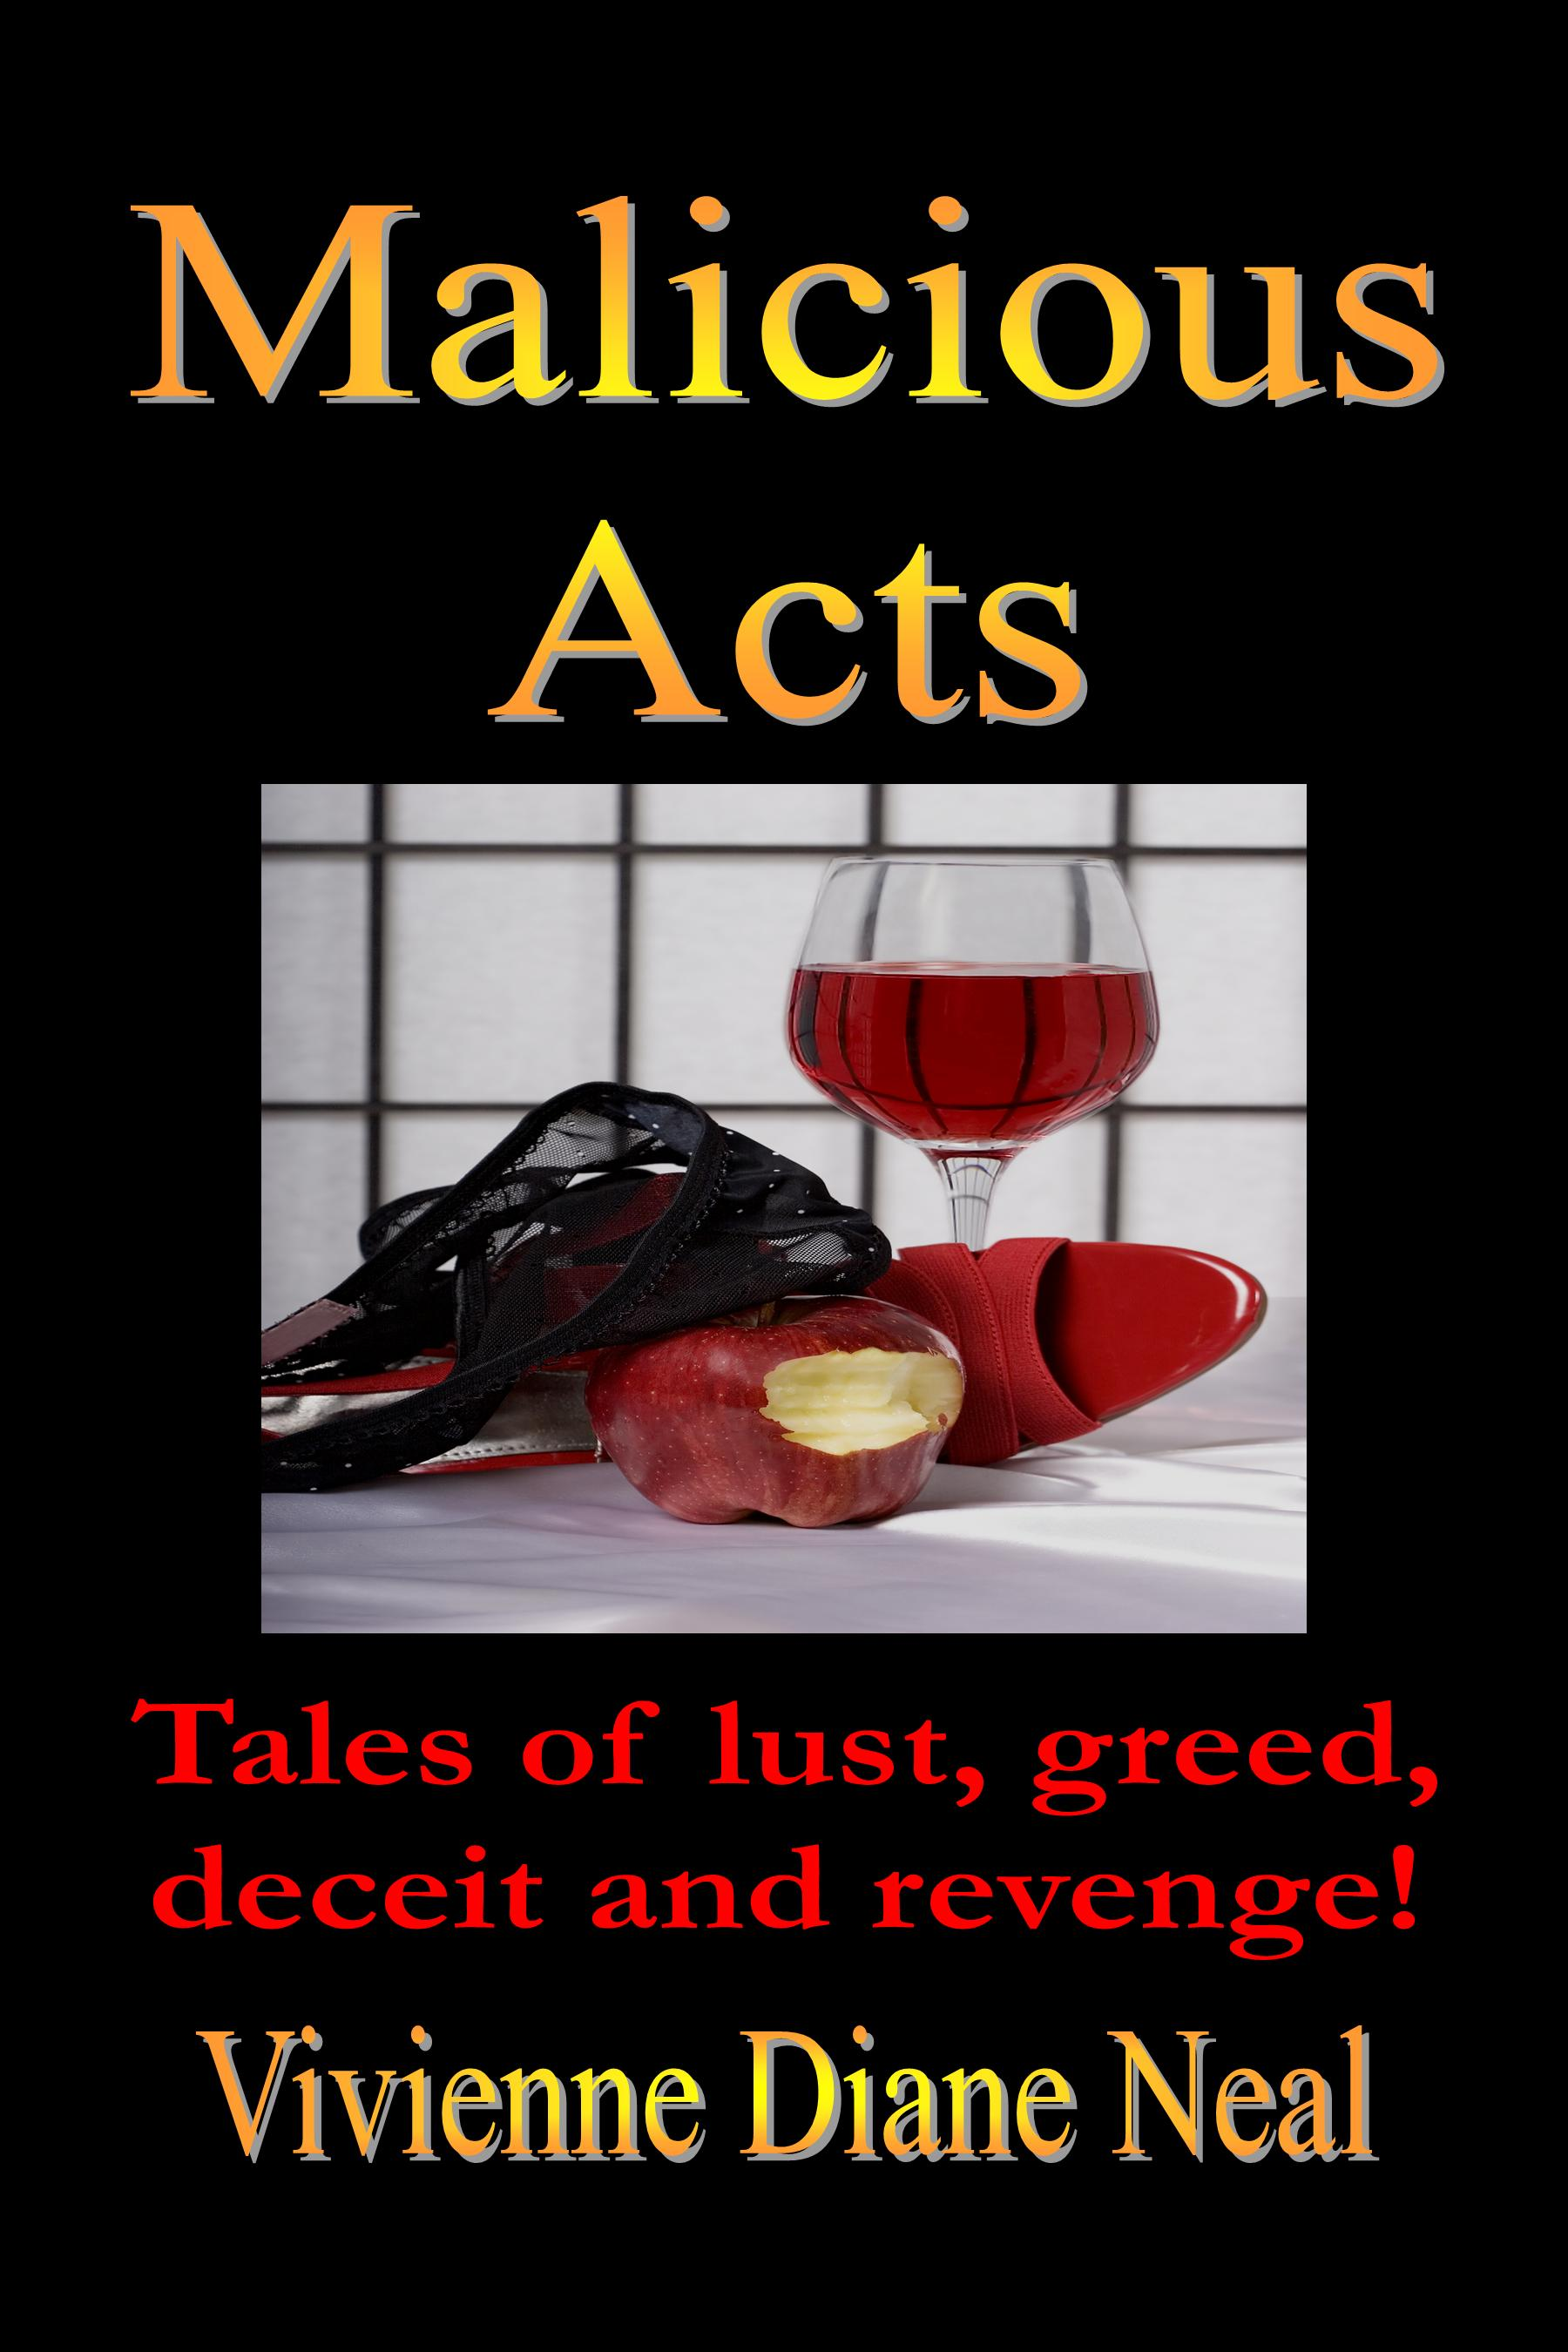 Malicious Acts Front Book Cover